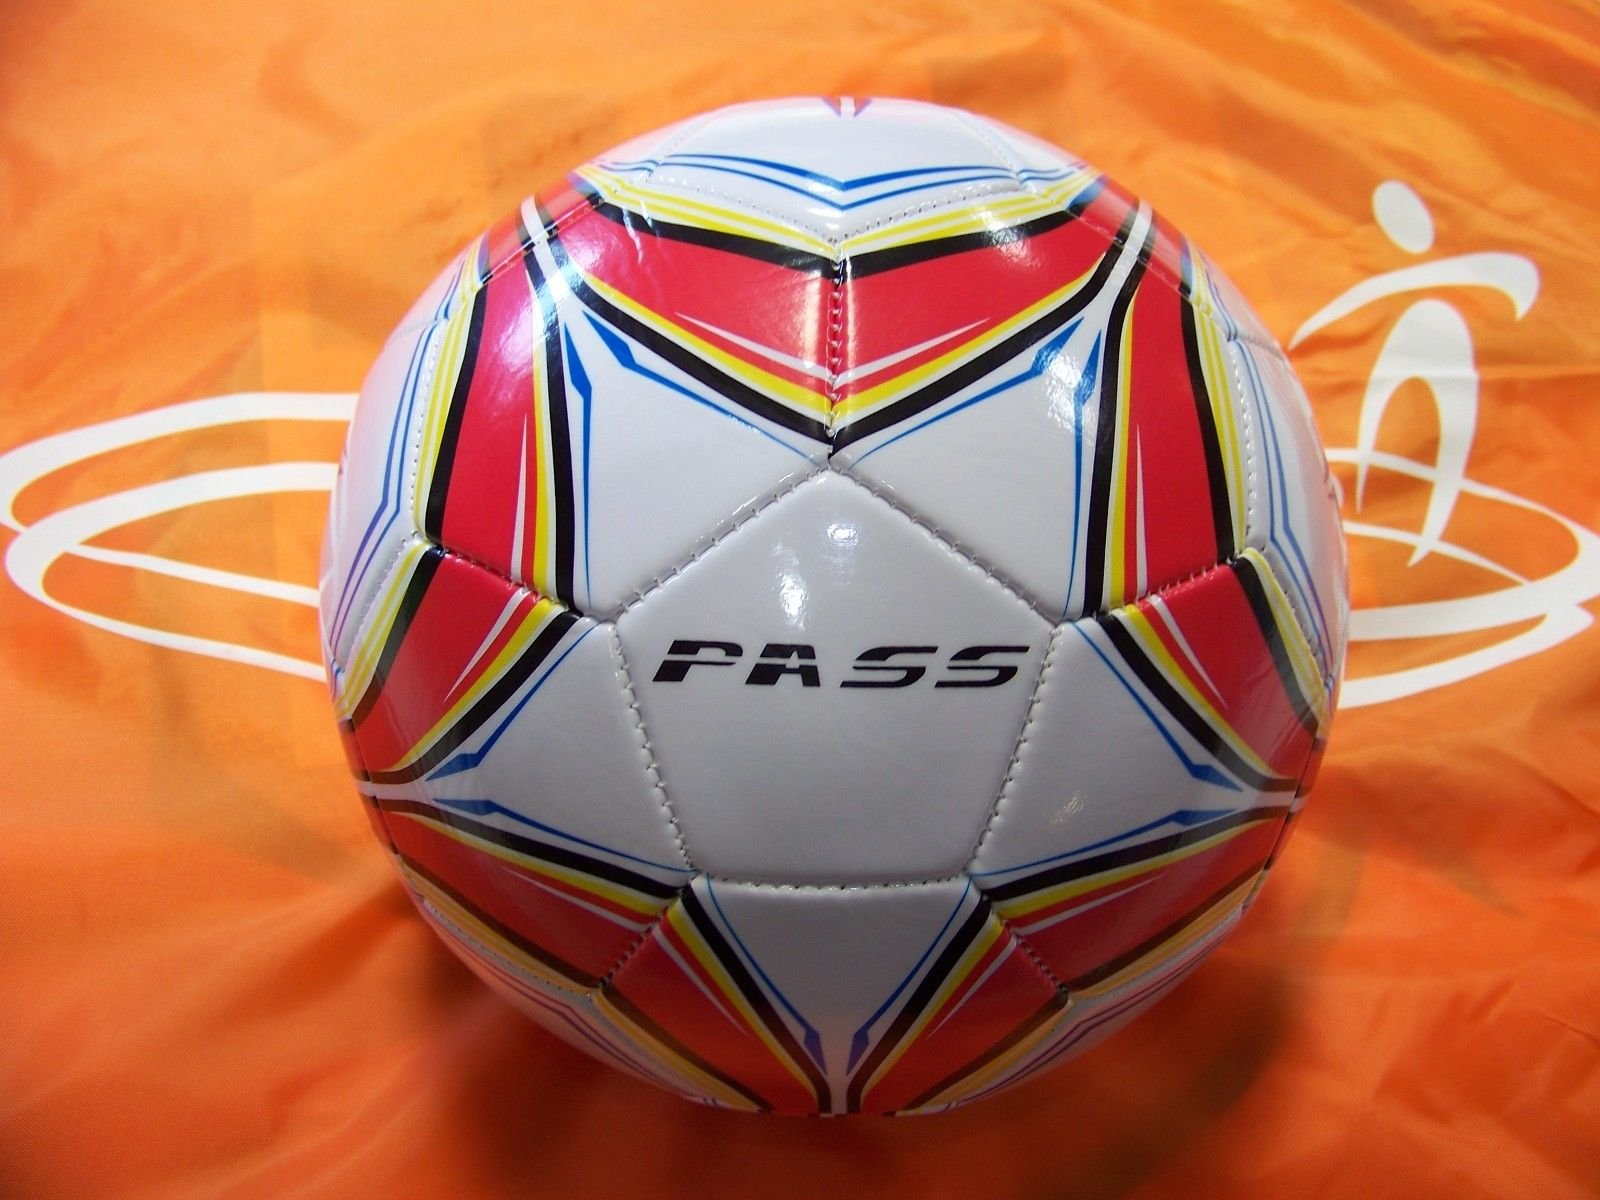 50 CT - Size 4, 32 Panel Machine Sewn Soccer Balls. Official Sizes & Weight. COMES WITH FREE 6'' PUMP! (Blue, Red & Yellow)